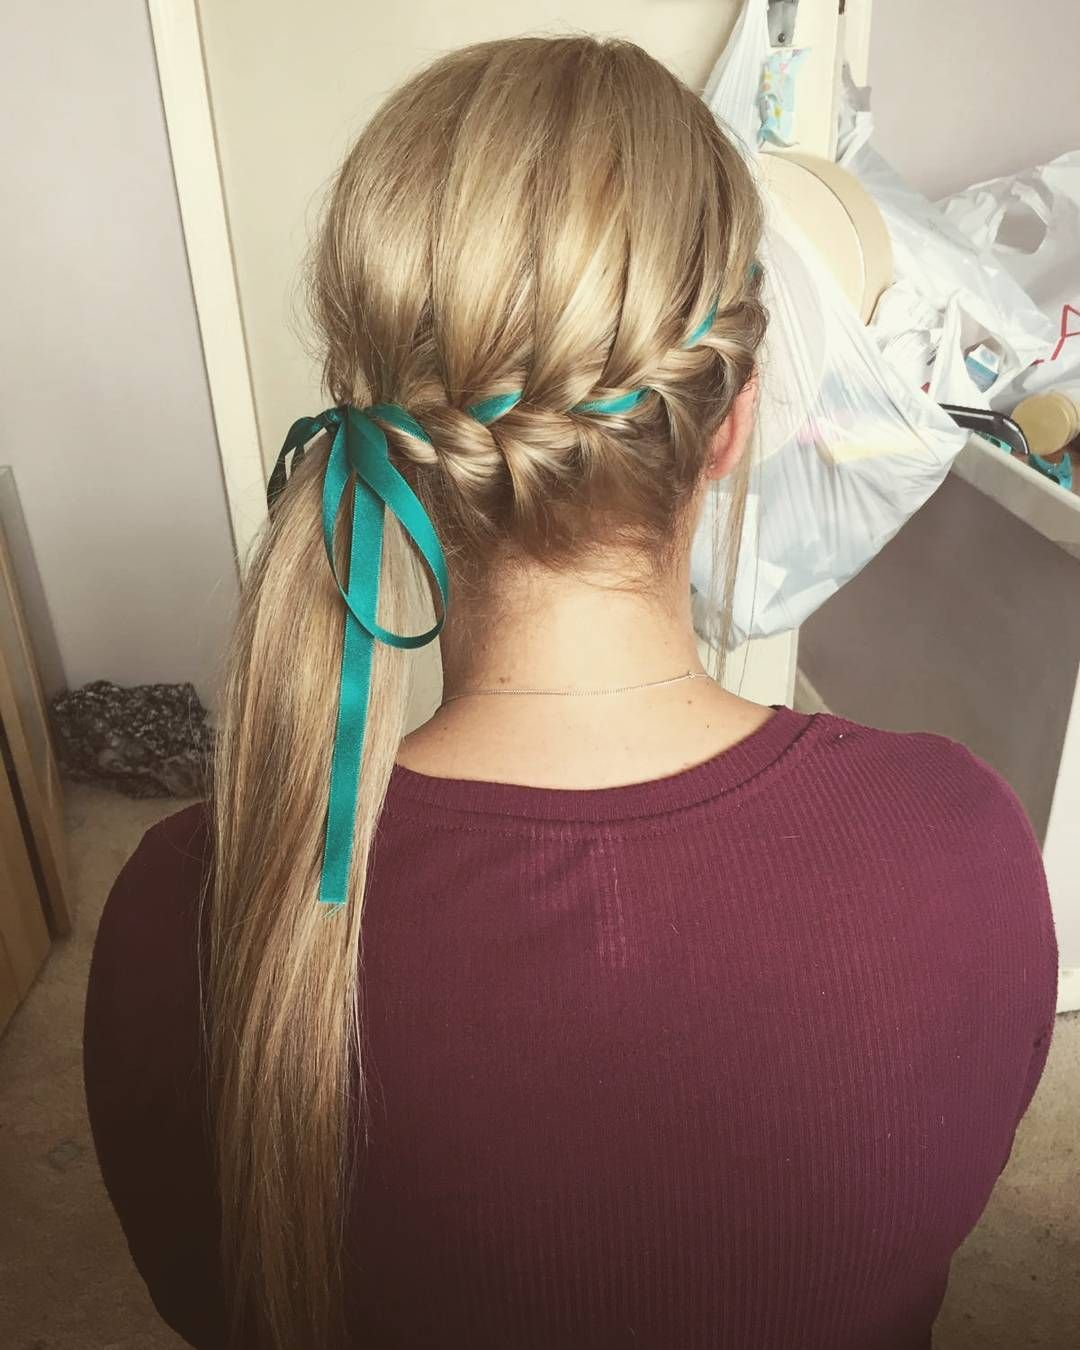 cute ponytail hairstyles u simplicity and elegance combined check